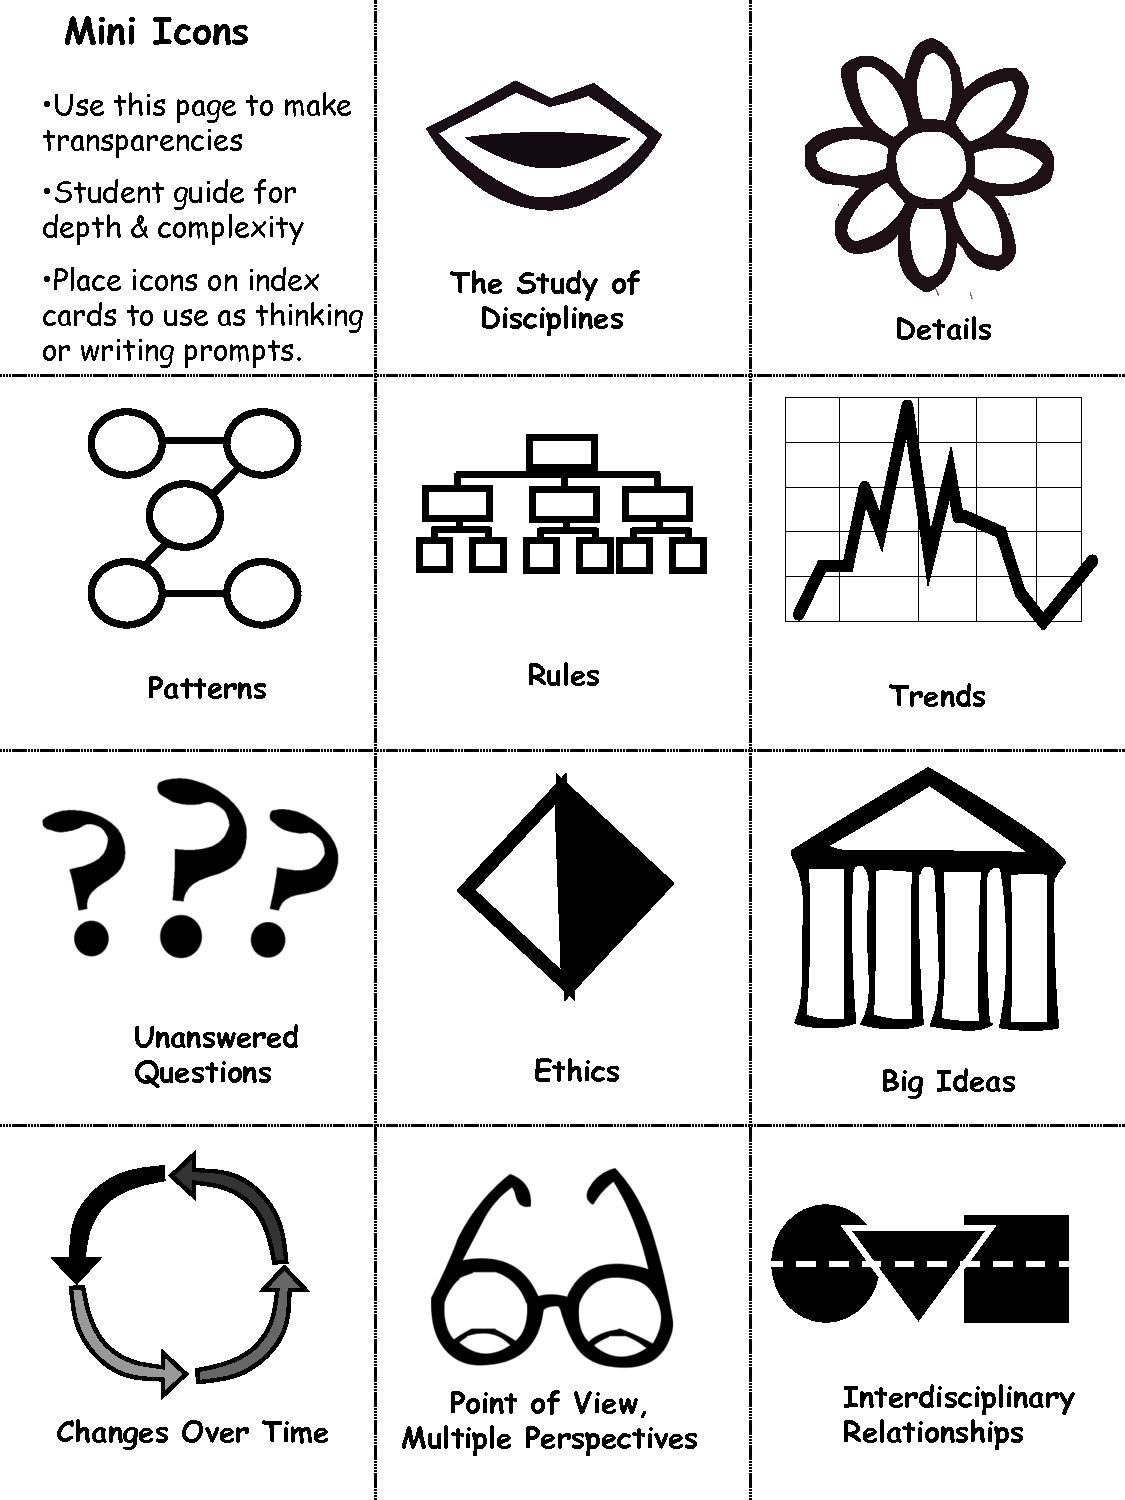 14 Depth And Complexity Icons Perspectives Images.